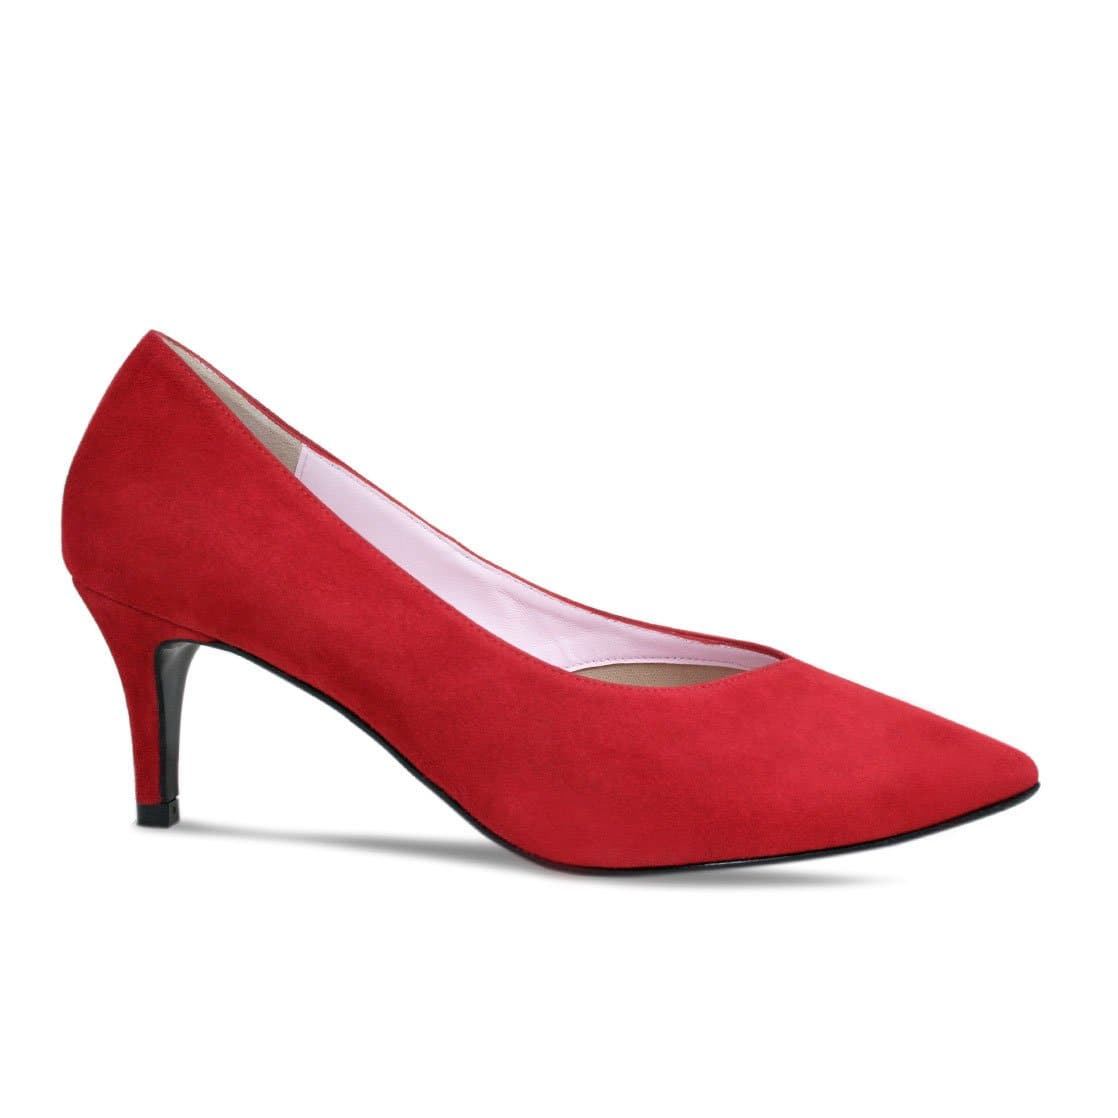 Red Suede Mid-Heel Pumps